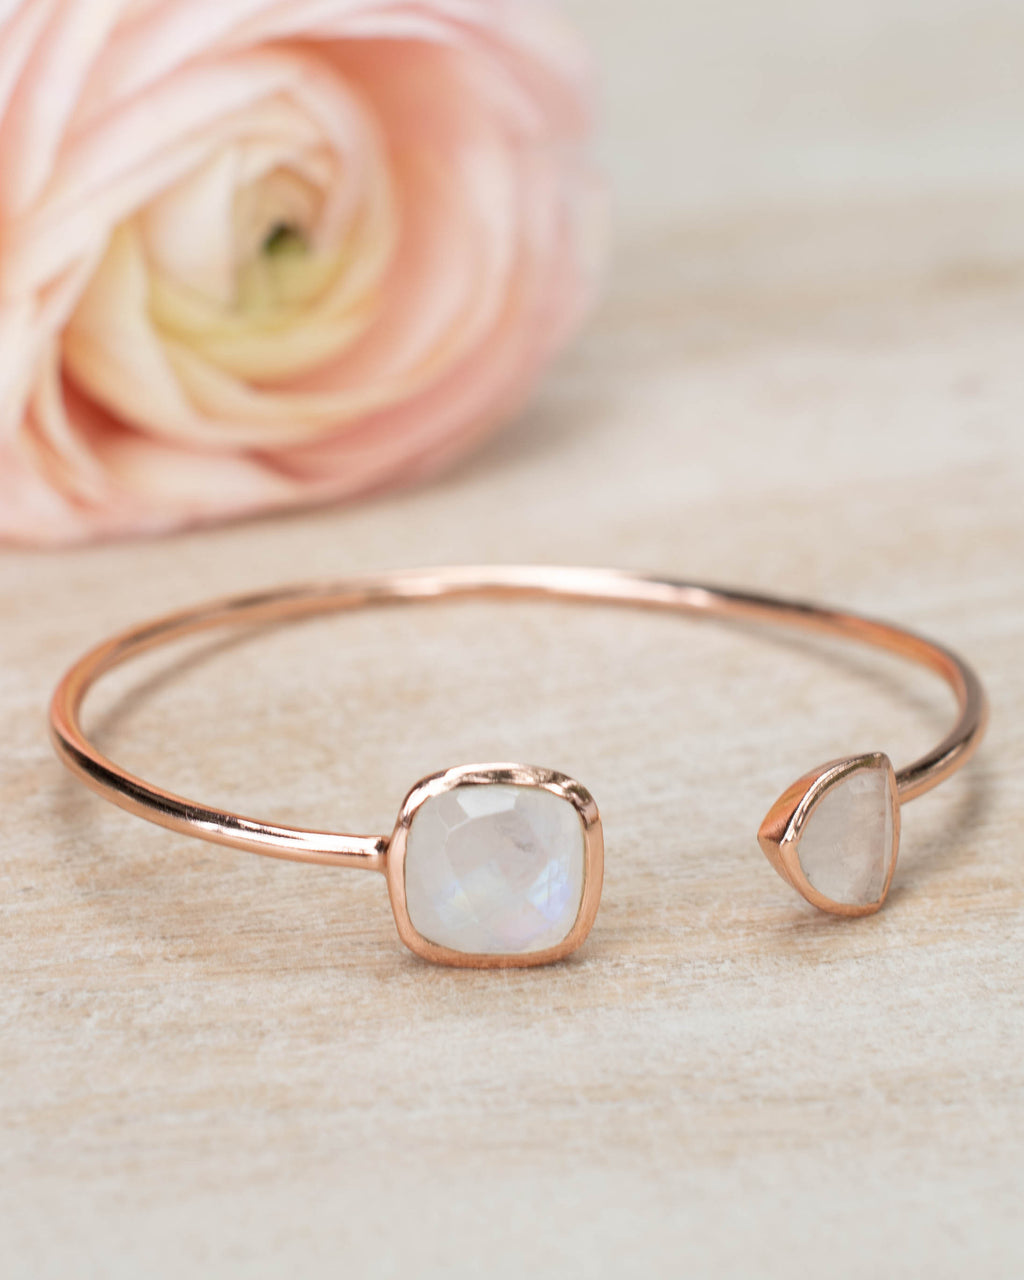 Moonstone Bangle Bracelet *Gold Plated 18k or Silver Plated or Rose Gold Plated* Gemstone * Gypsy * Adjustable * Statement * BJB002C